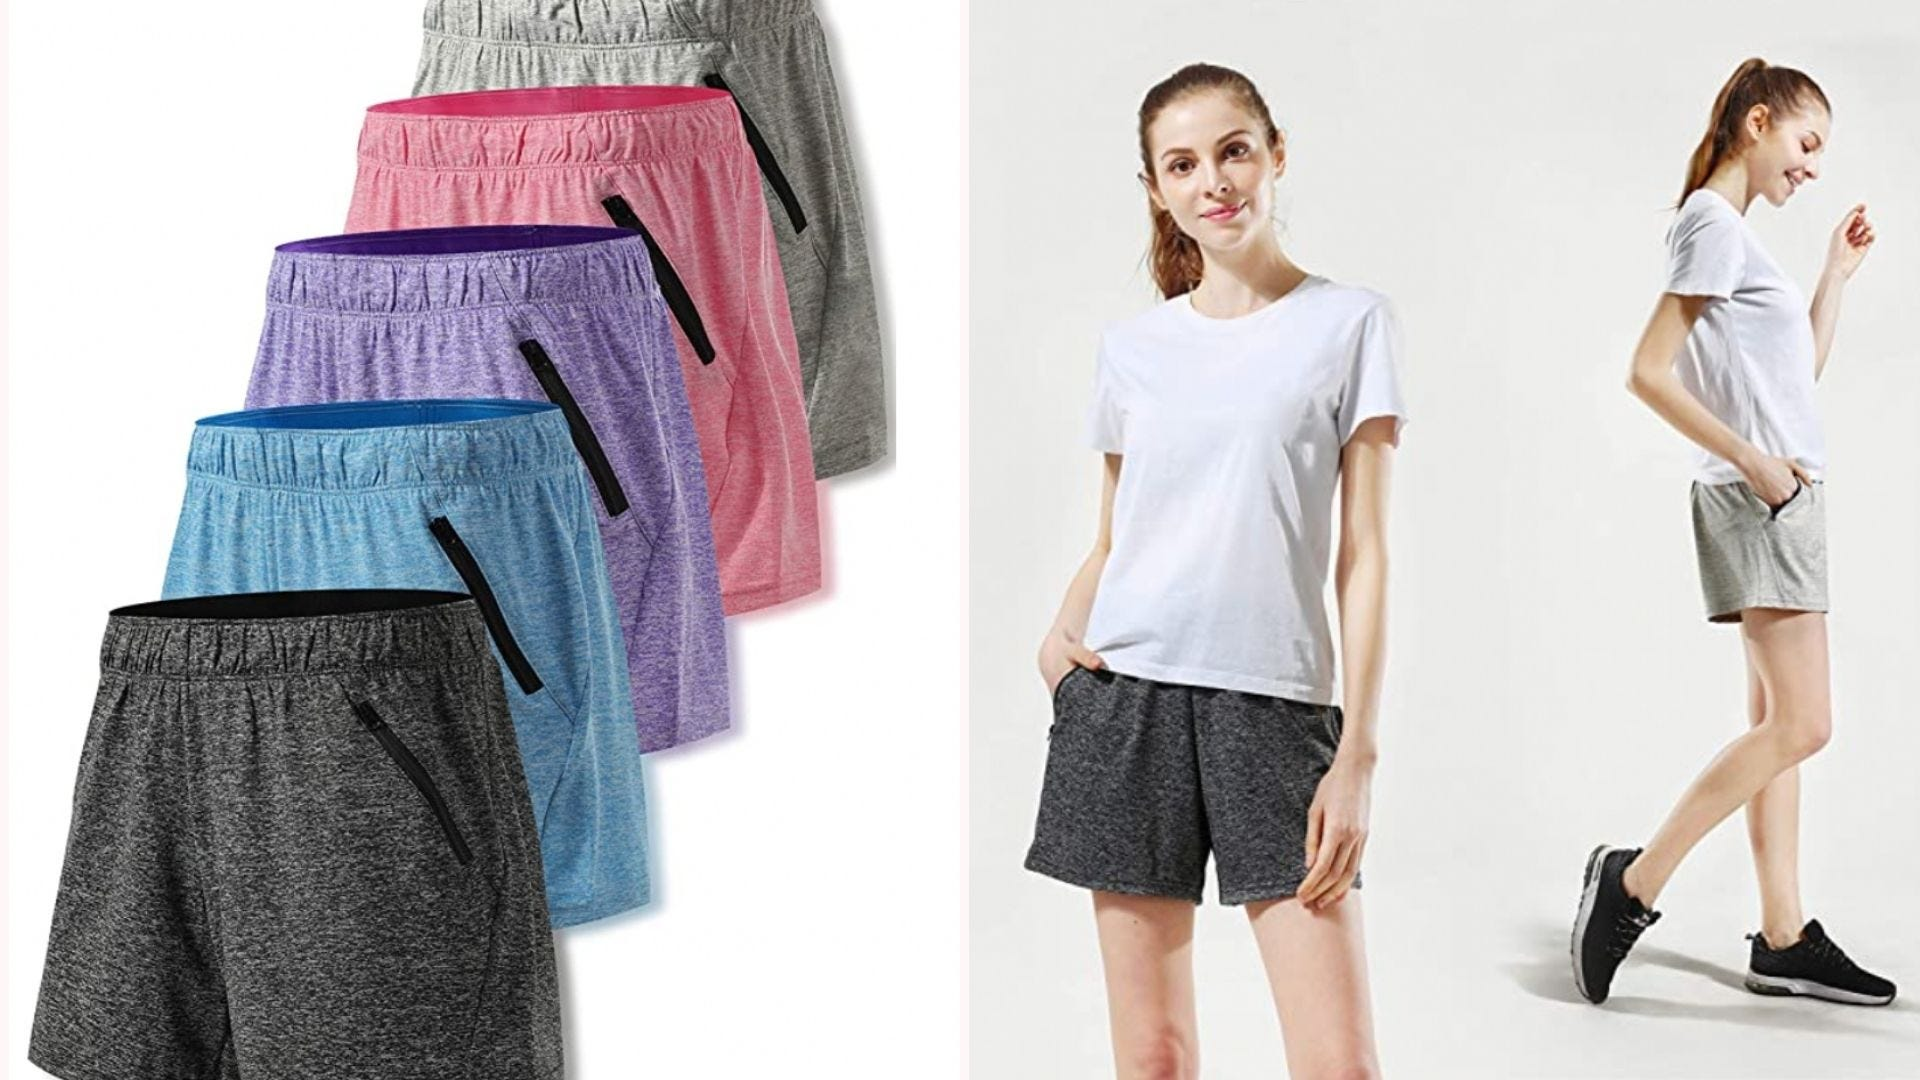 five of the same athletic short in different colors; a woman models the black and gray colors